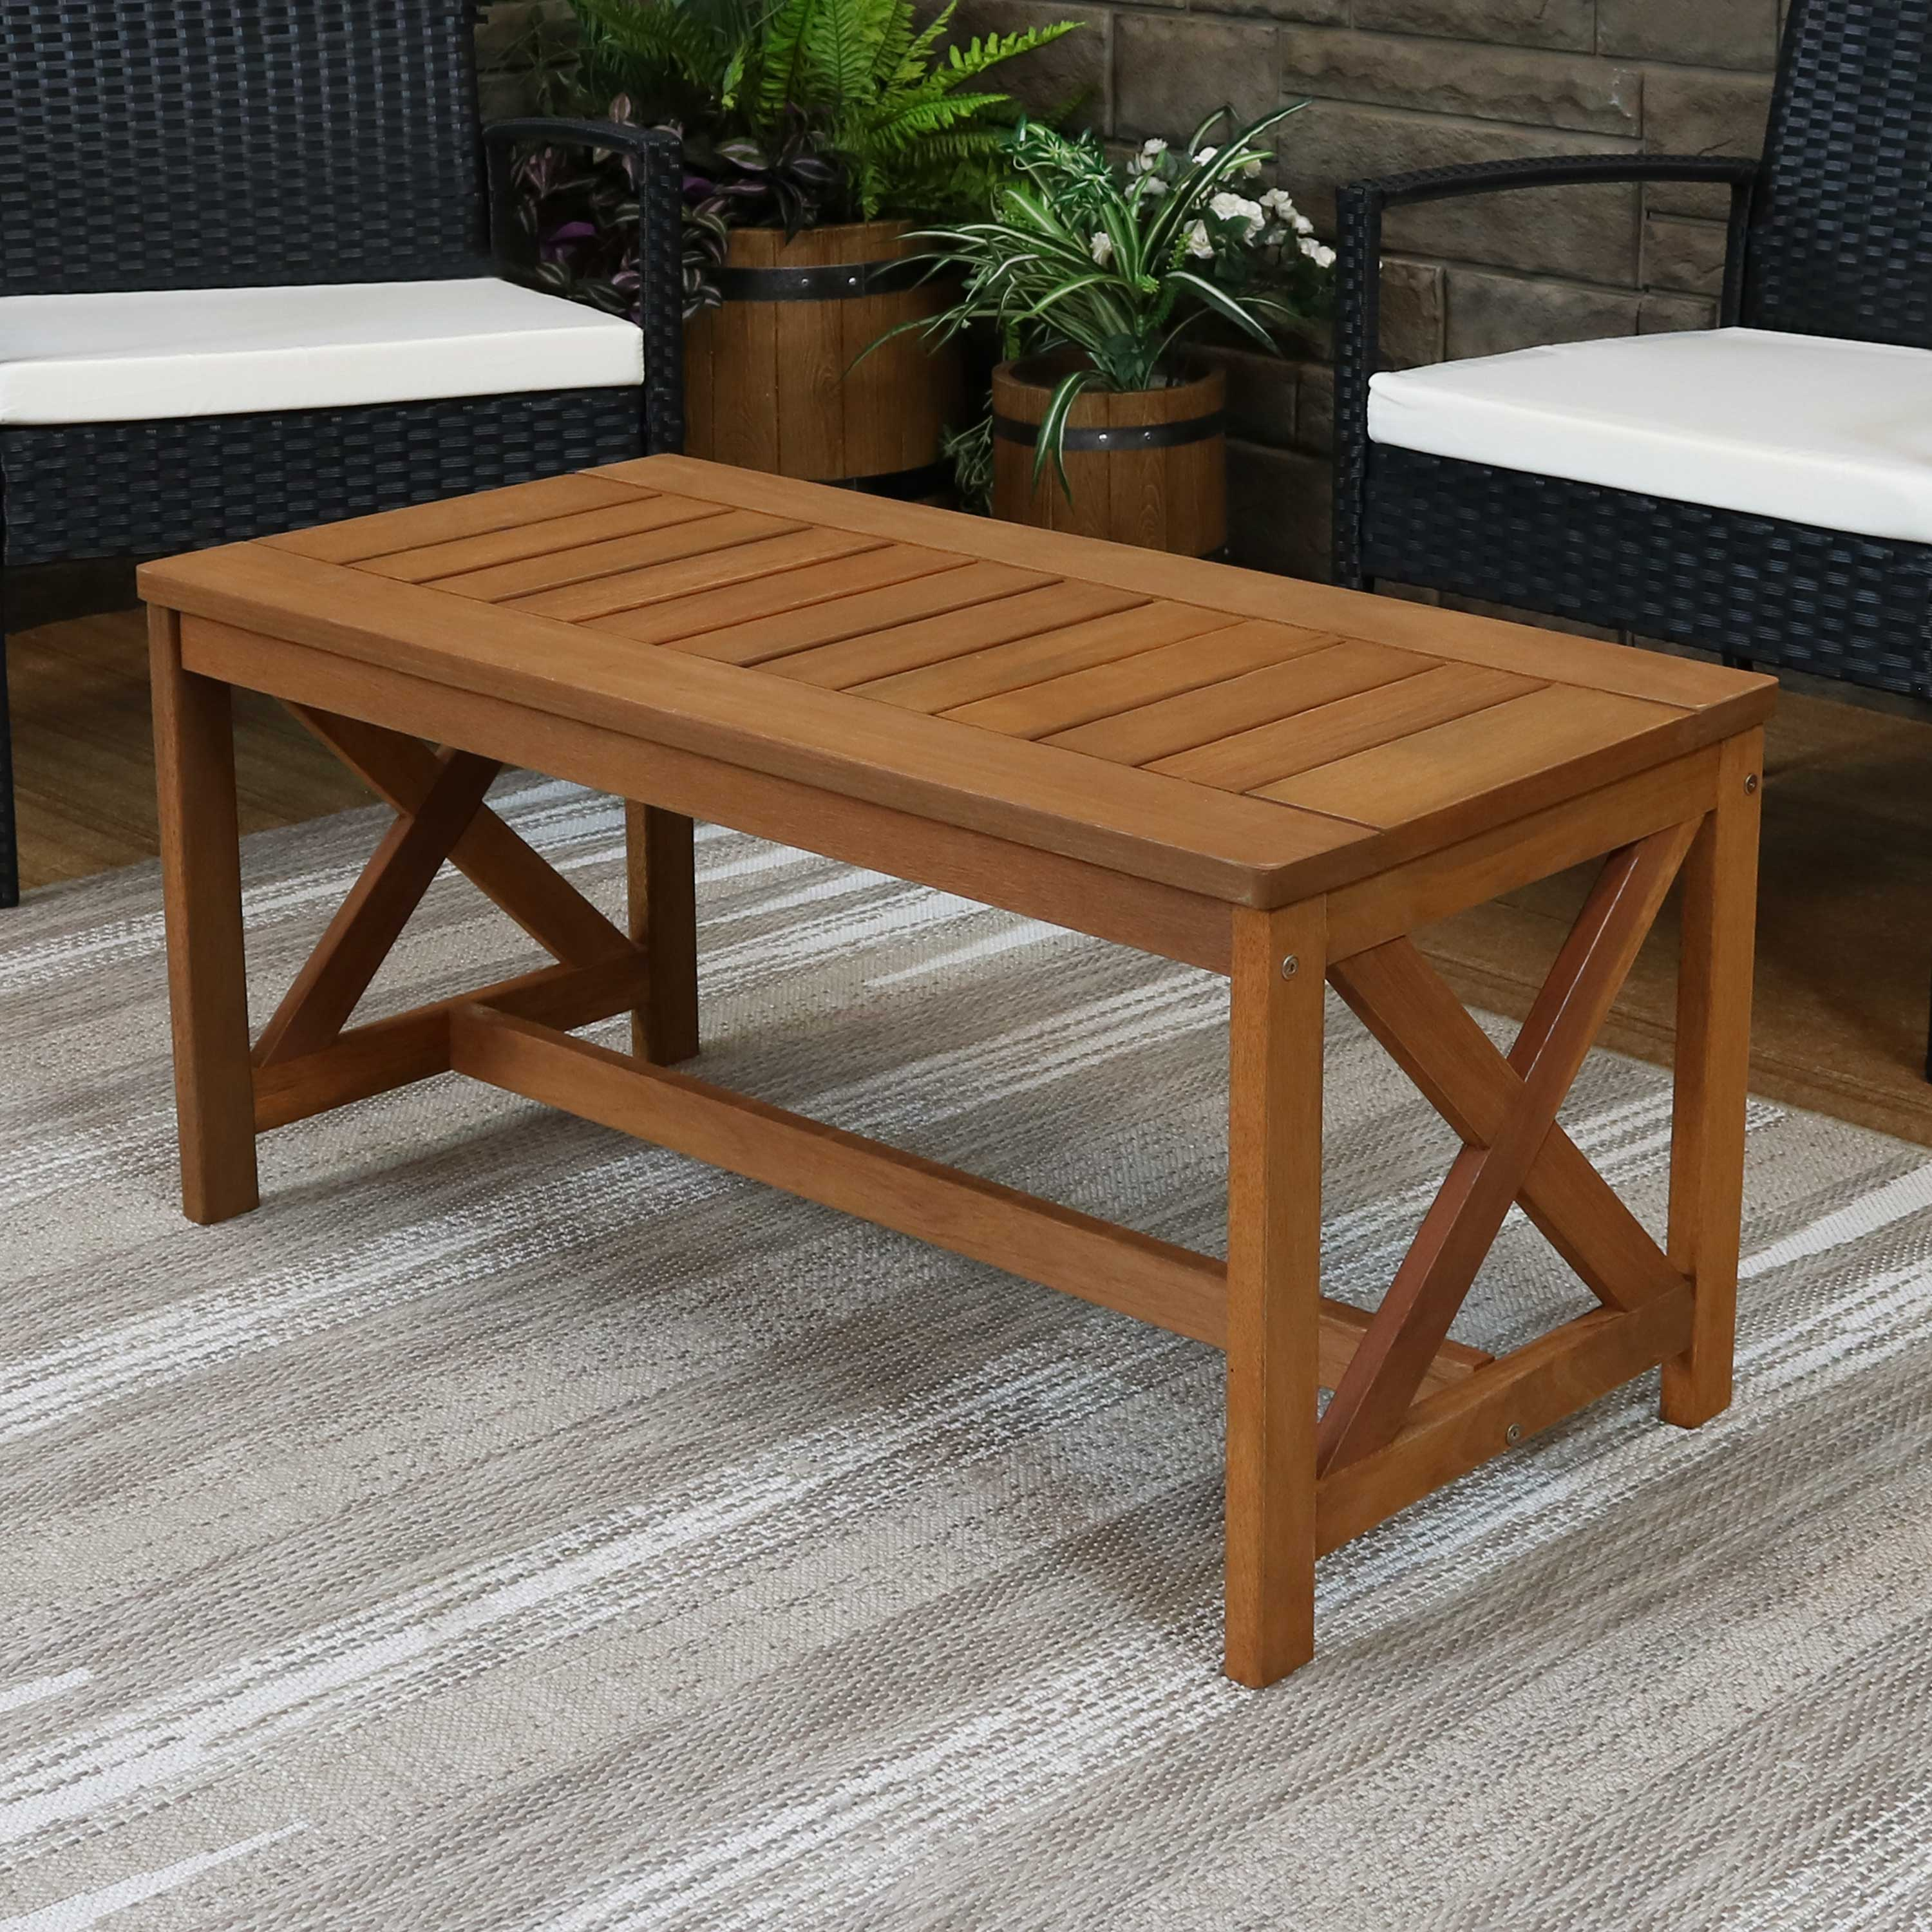 sunnydaze meranti wood outdoor patio coffee table with teak finish outside furniture for lawn garden porch deck balcony backyard and sunroom